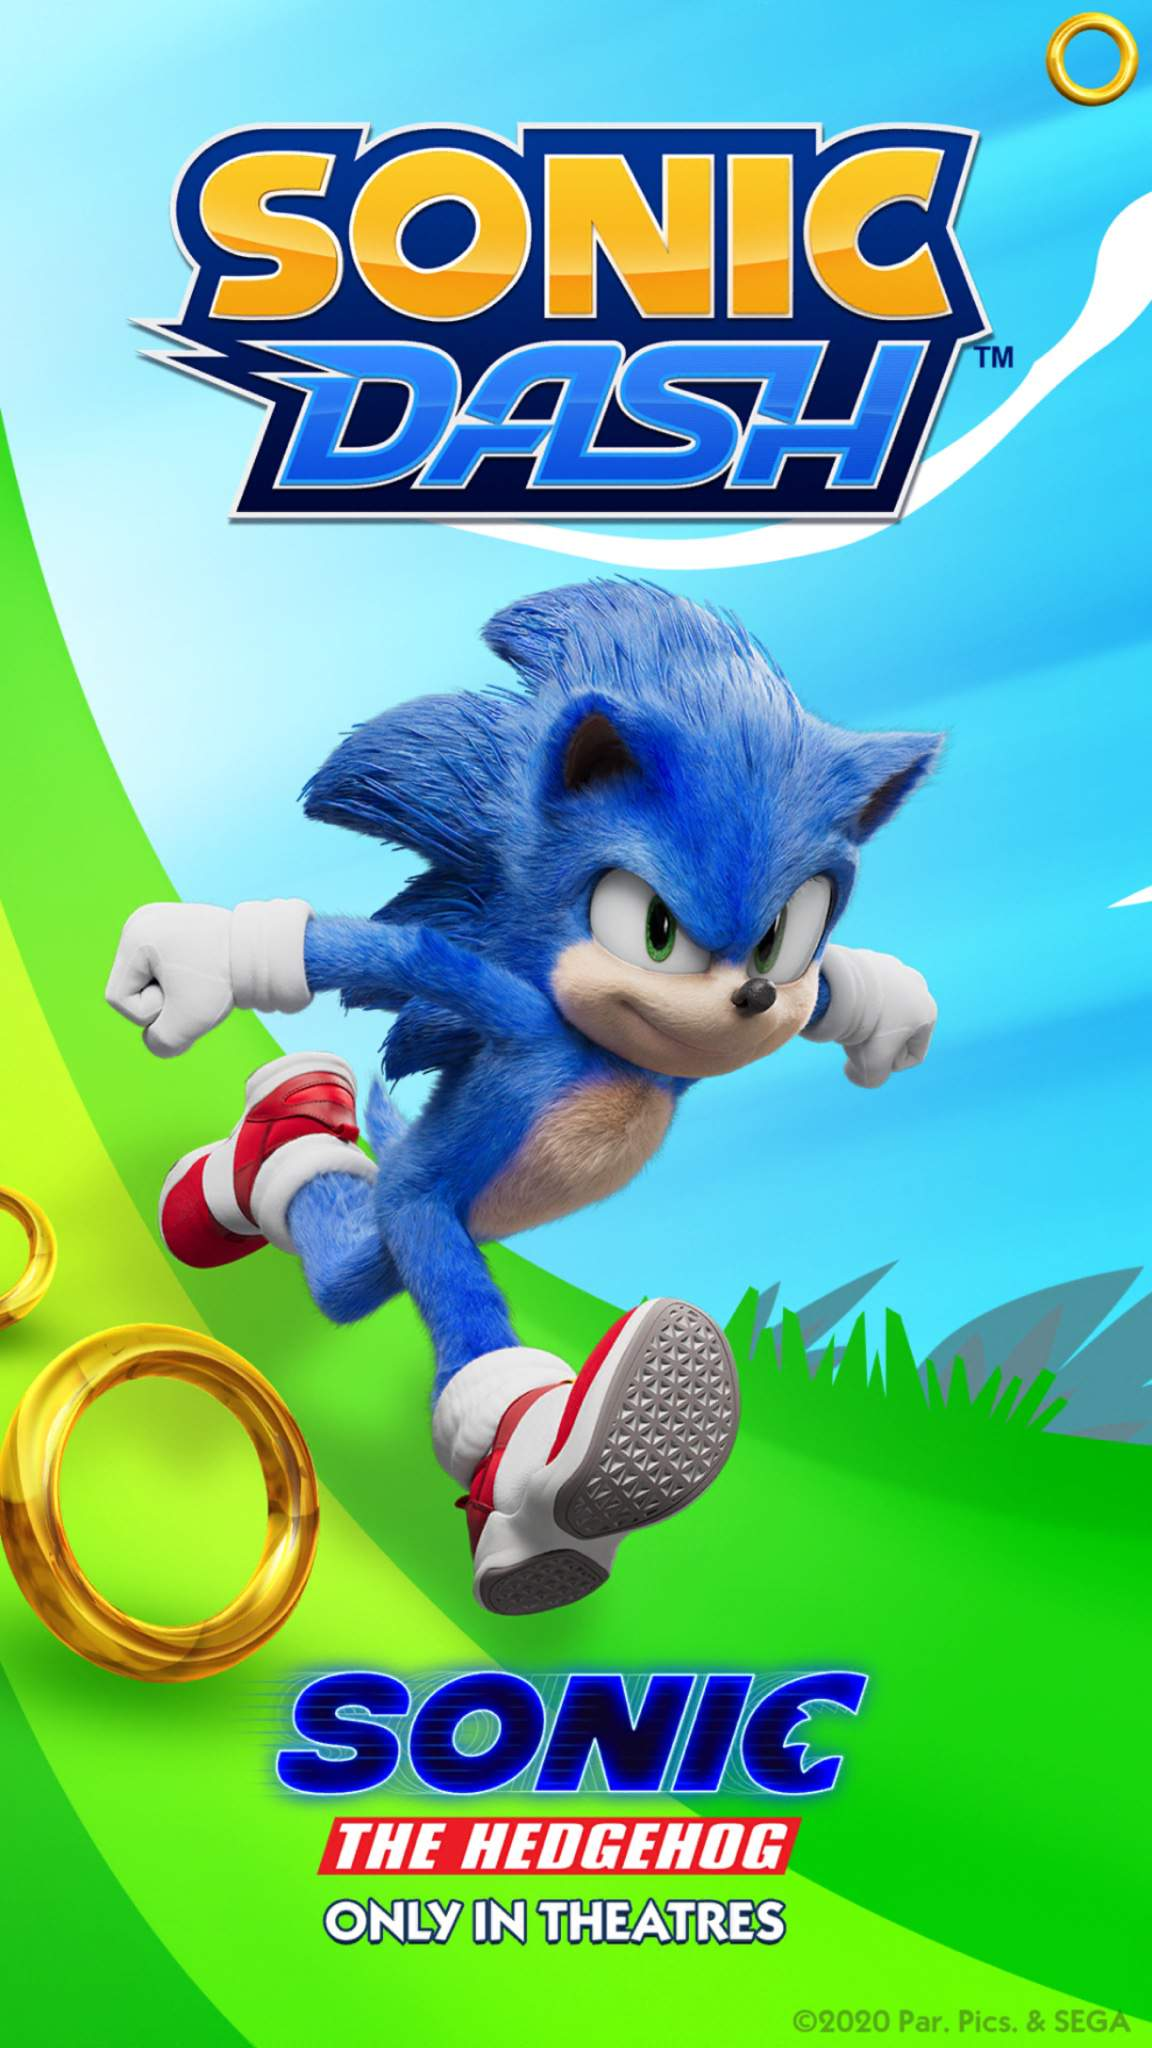 Sonic Dash Sonic Movie Event Sonic The Hedgehog Amino